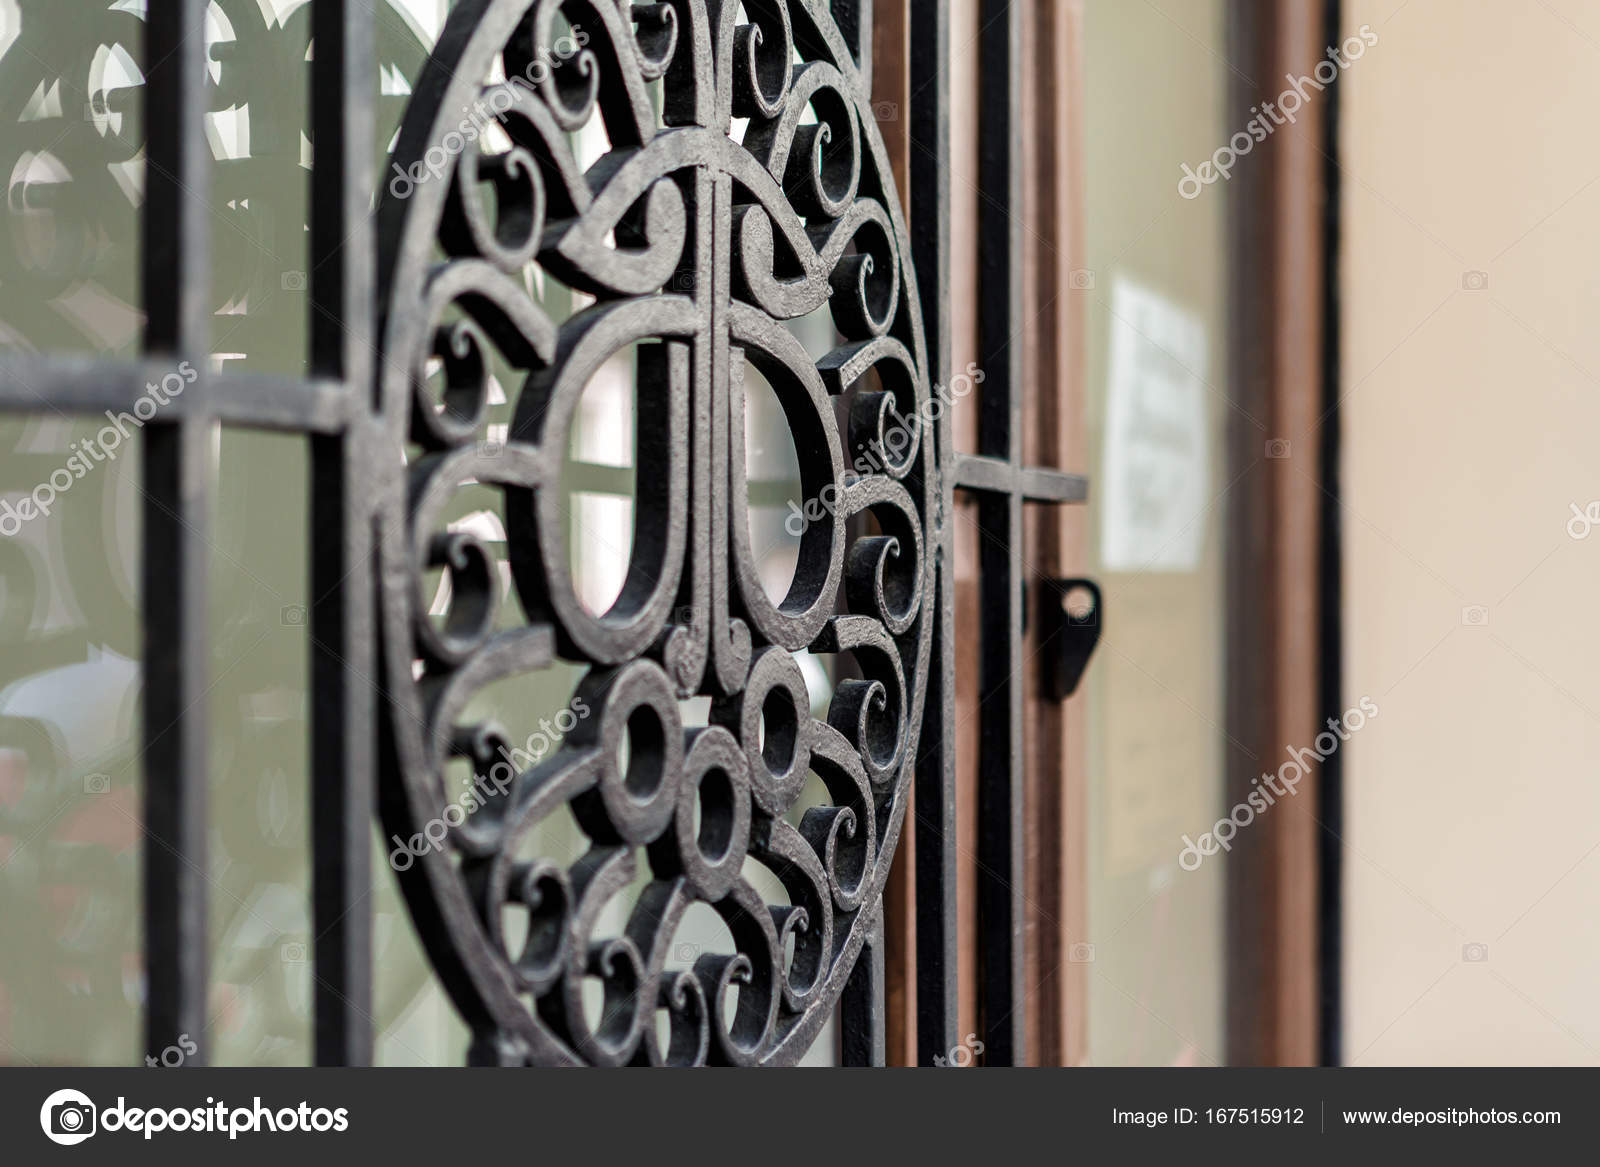 metal lattice window in the wall stock photo erstudio 167515912